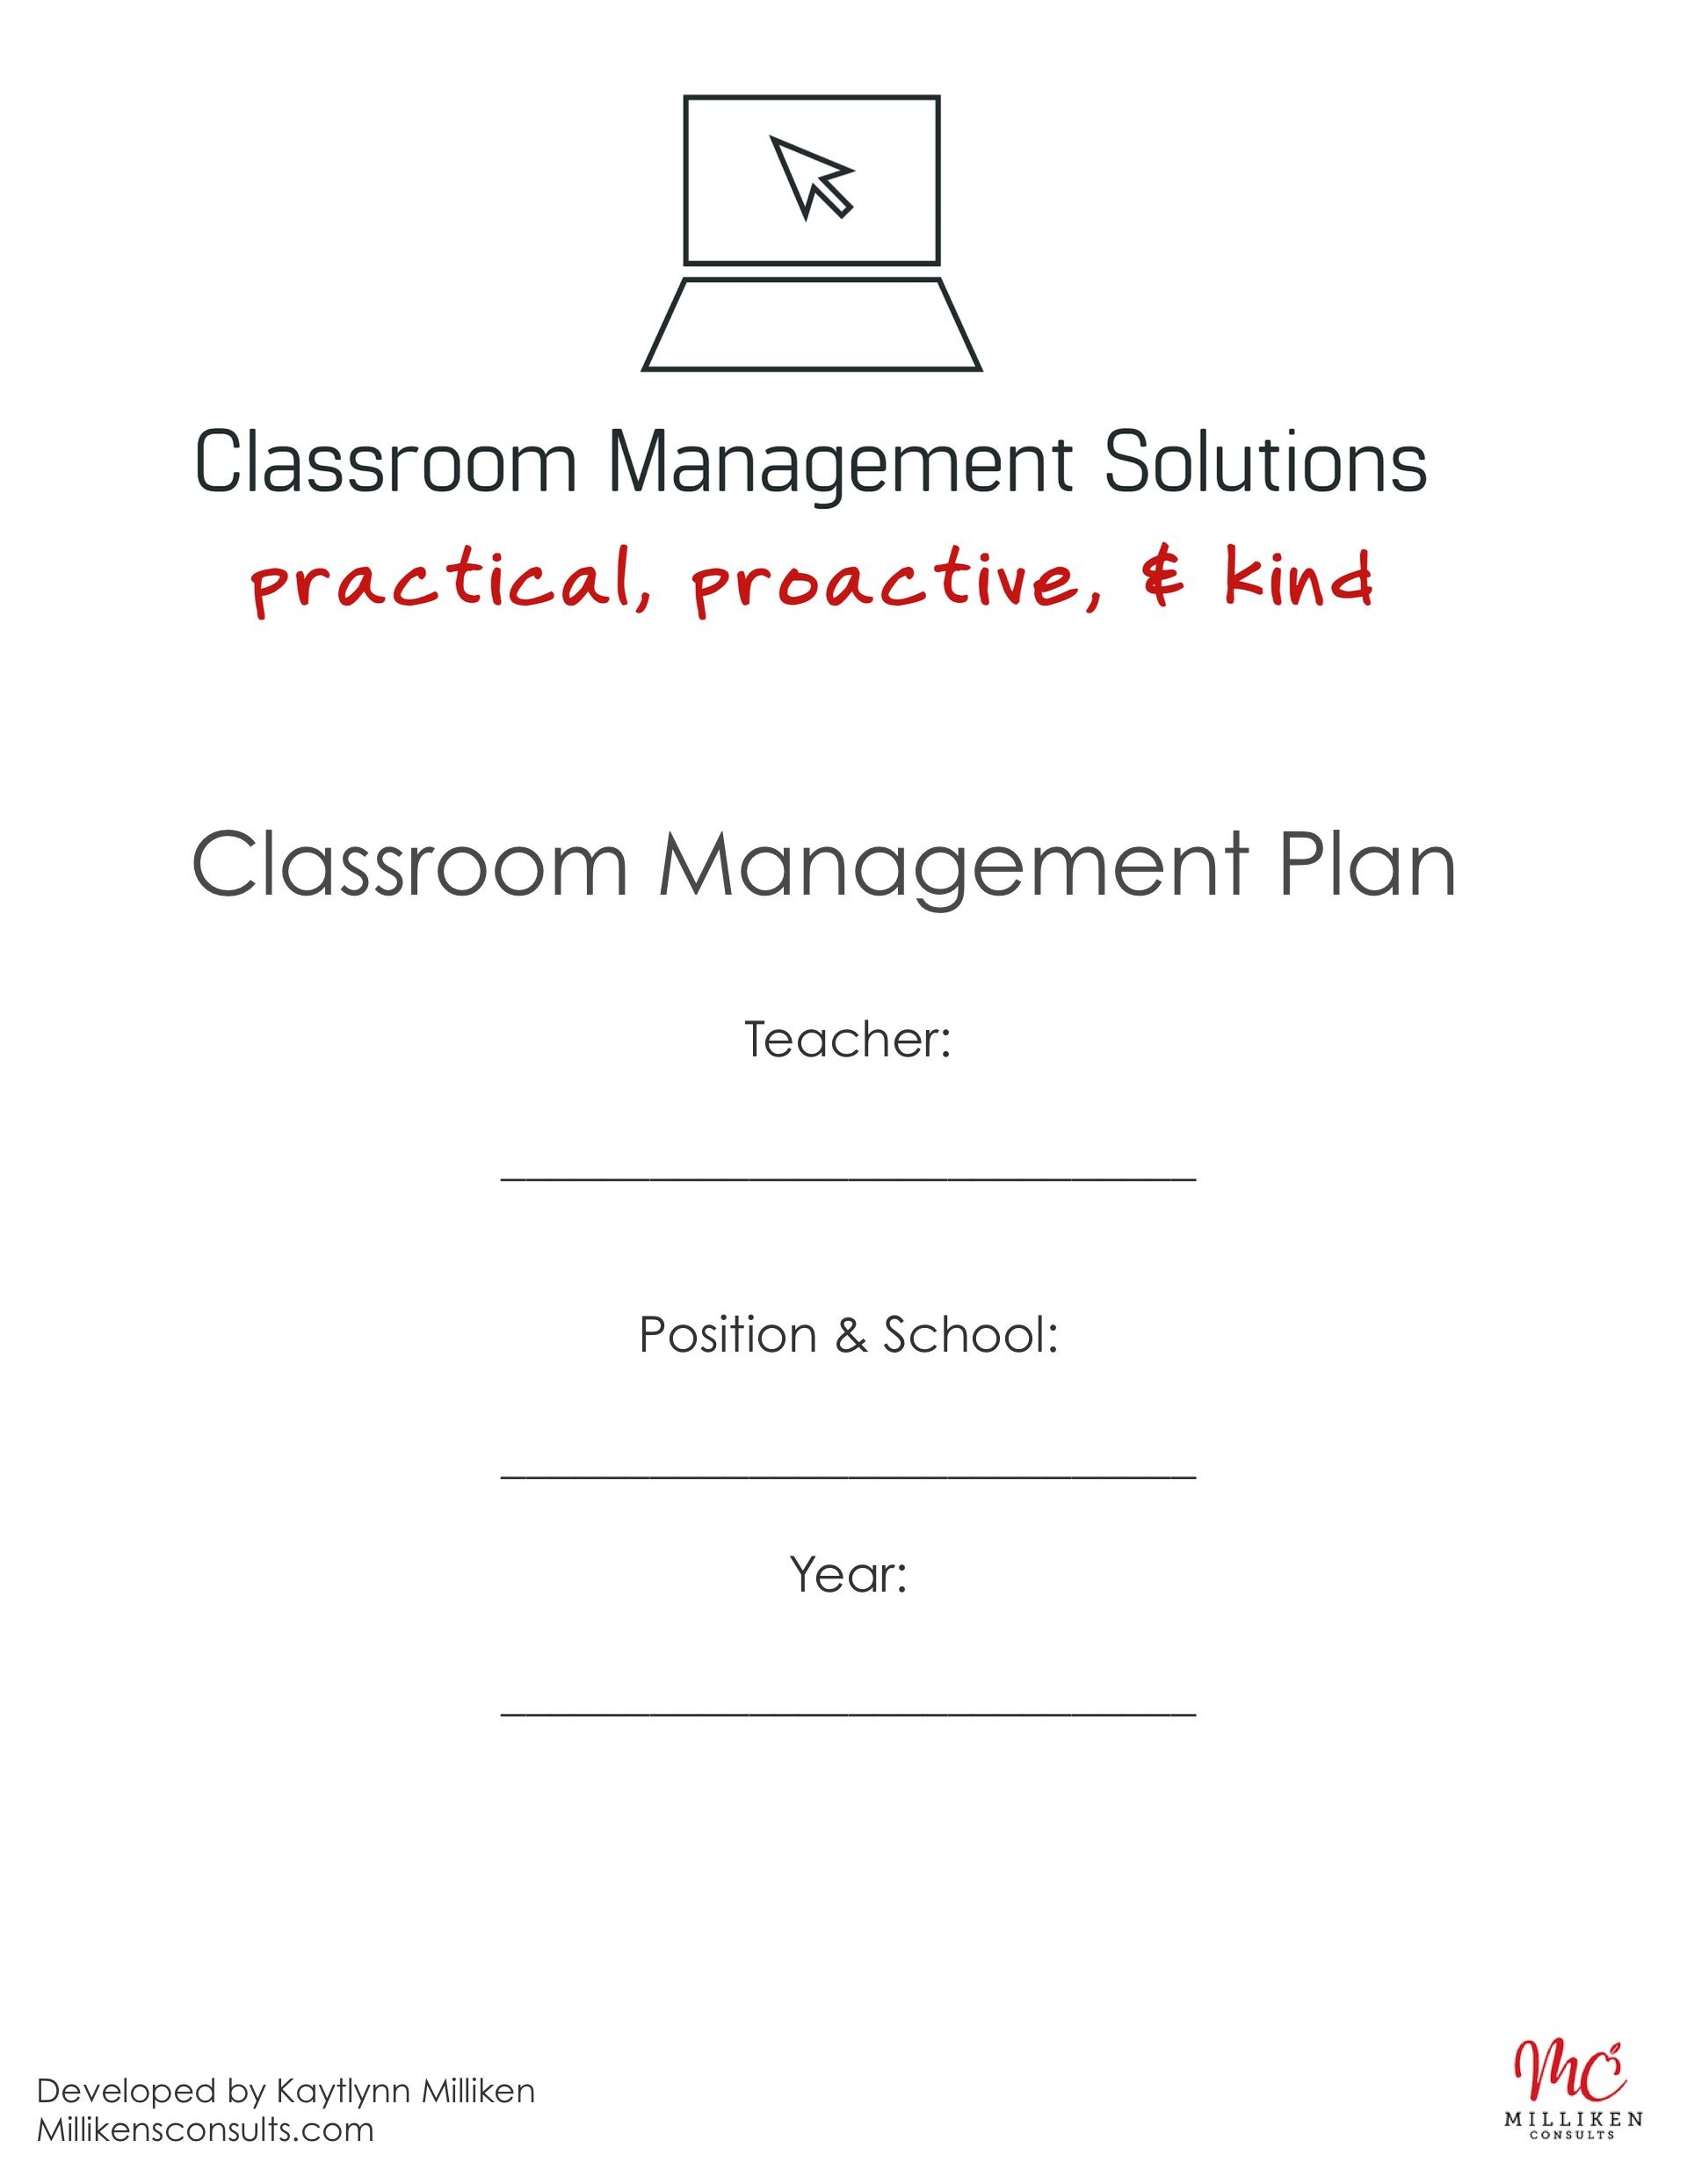 its time to make a plan download this free classroom management plan template